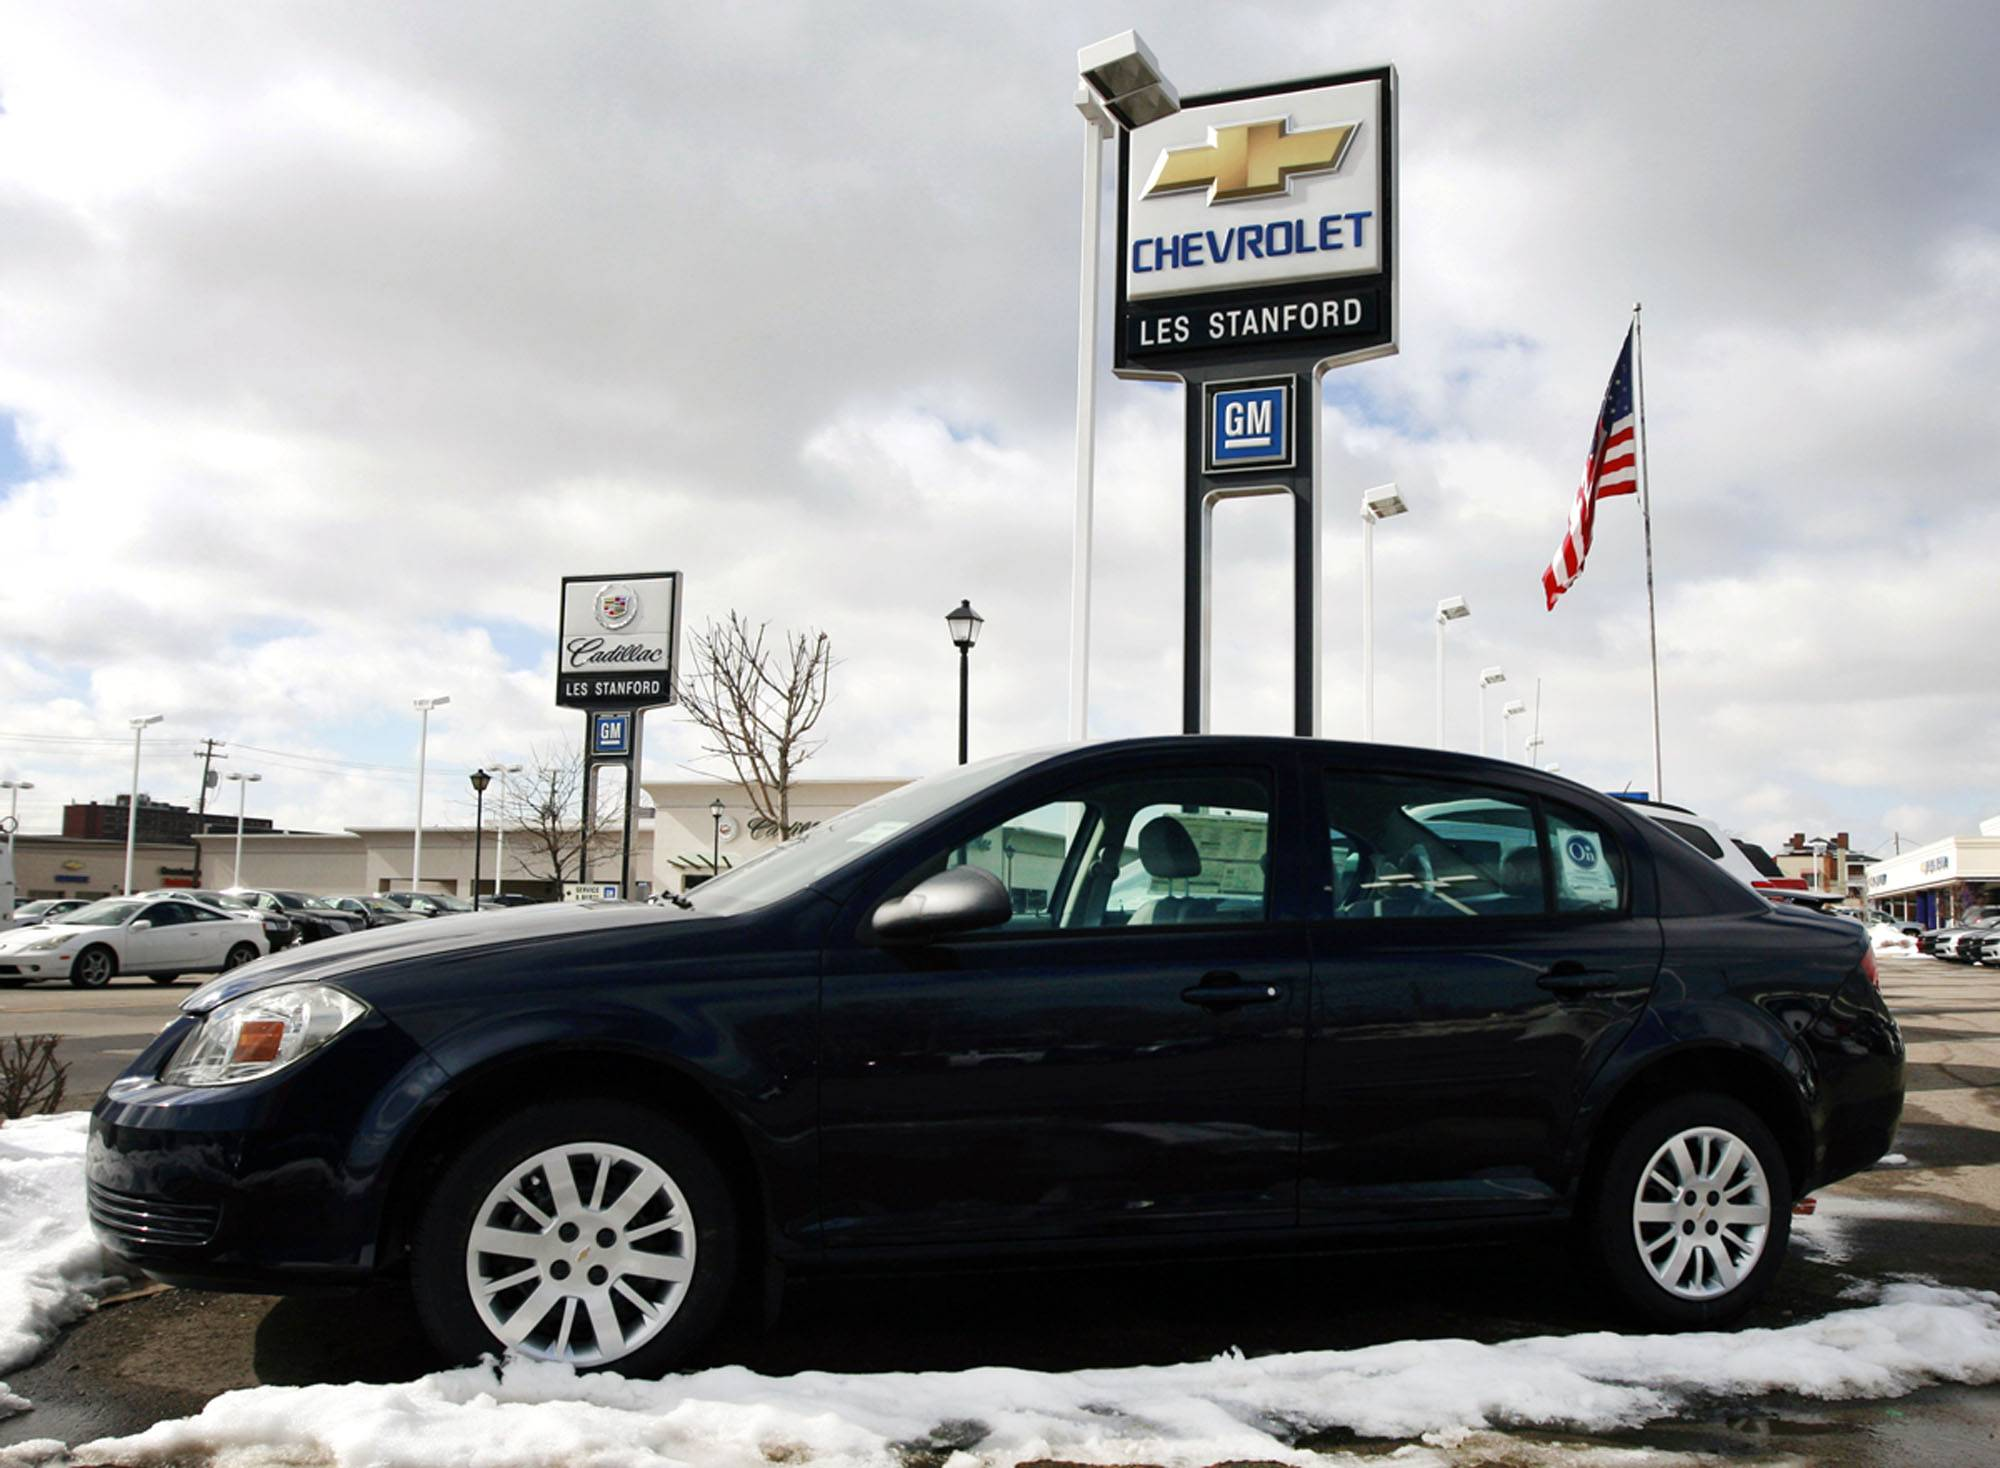 A General Motors Co. 2010 Chevrolet Cobalt sits on the lot of Les Stanford Chevrolet in Dearborn, Michigan,.